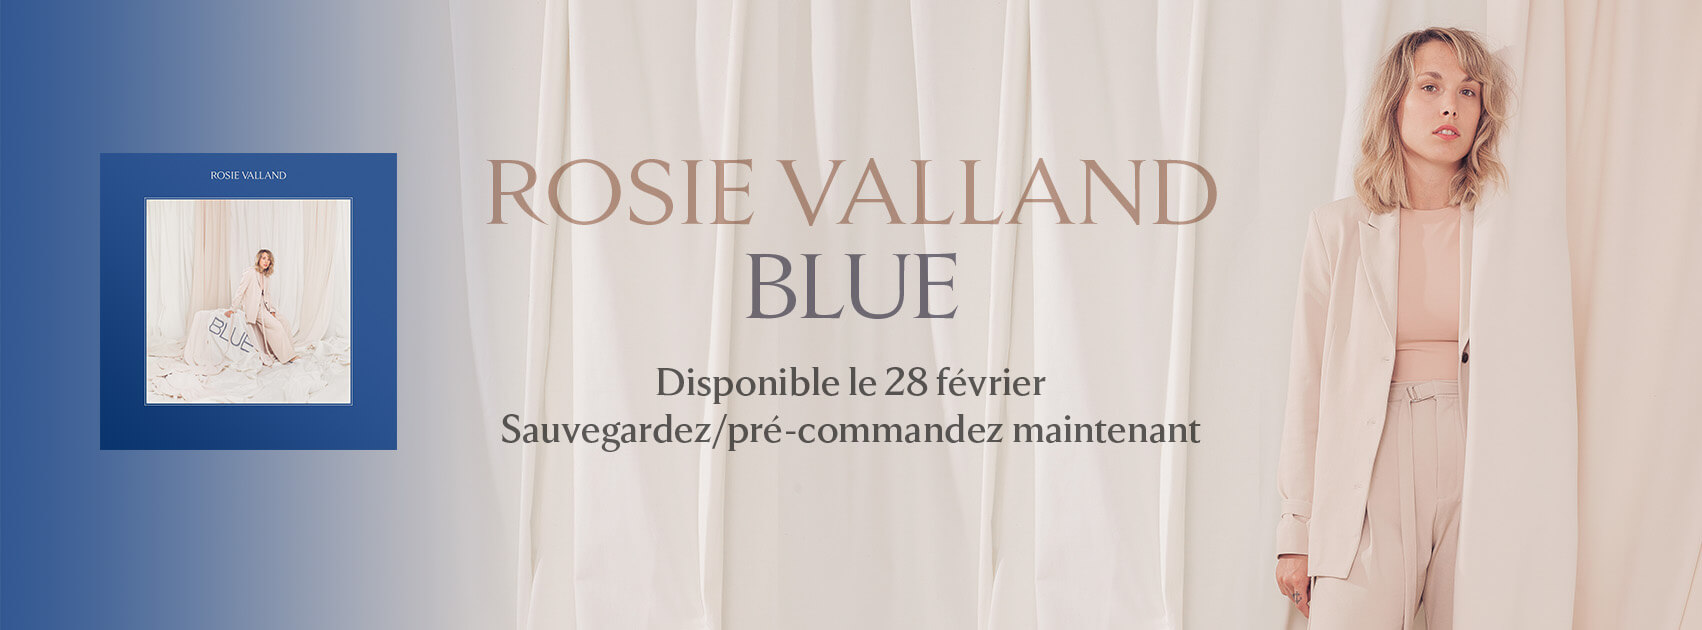 Rosie Valland BLUE